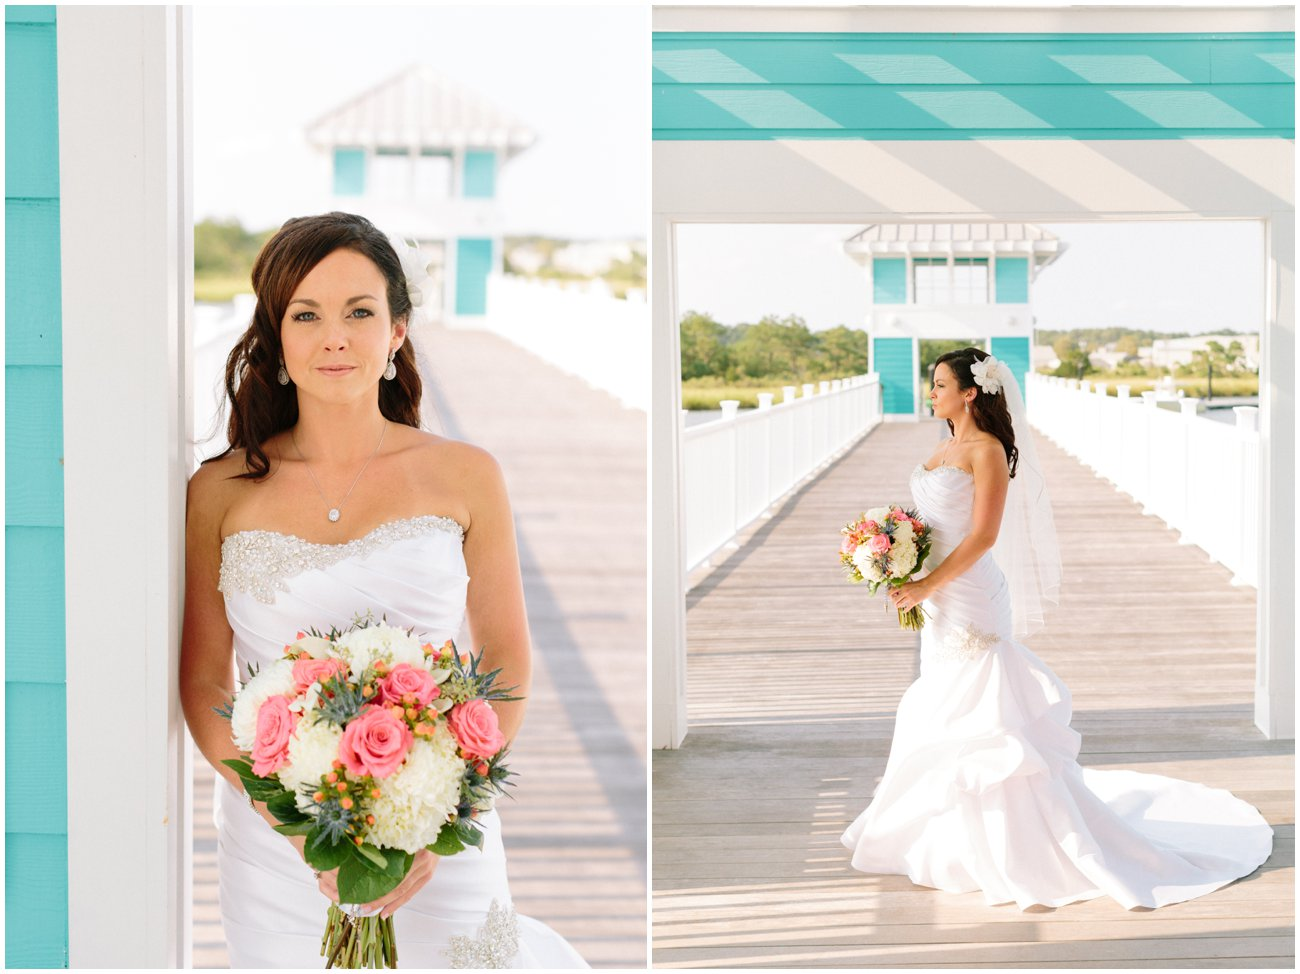 Aqua_Kings_Creek_Marina_Cape_Charles_Wedding_0022